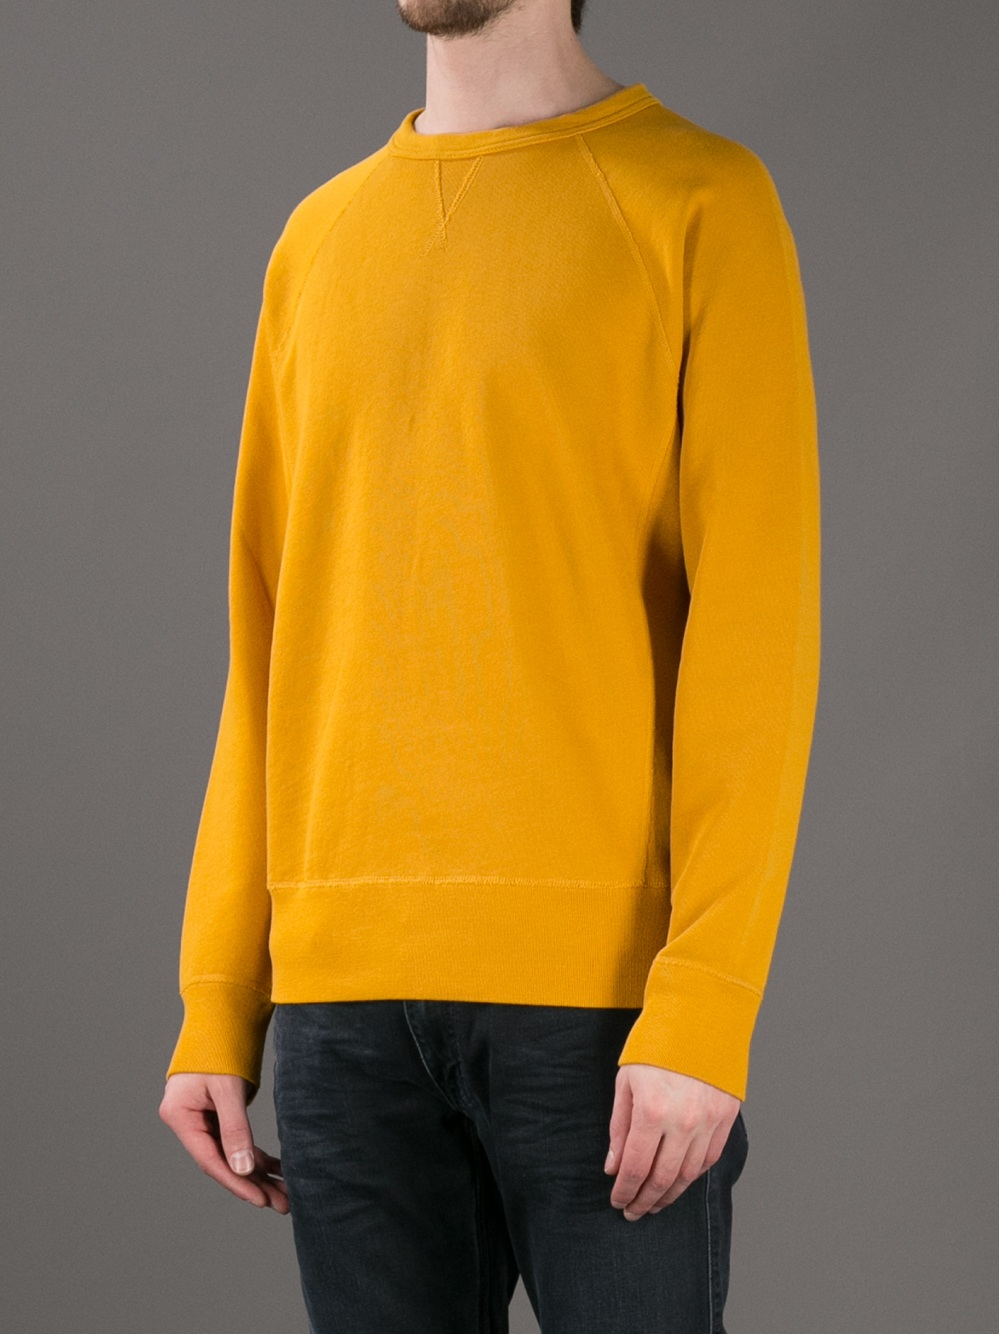 Acne studios Crew Neck Sweater in Yellow for Men | Lyst